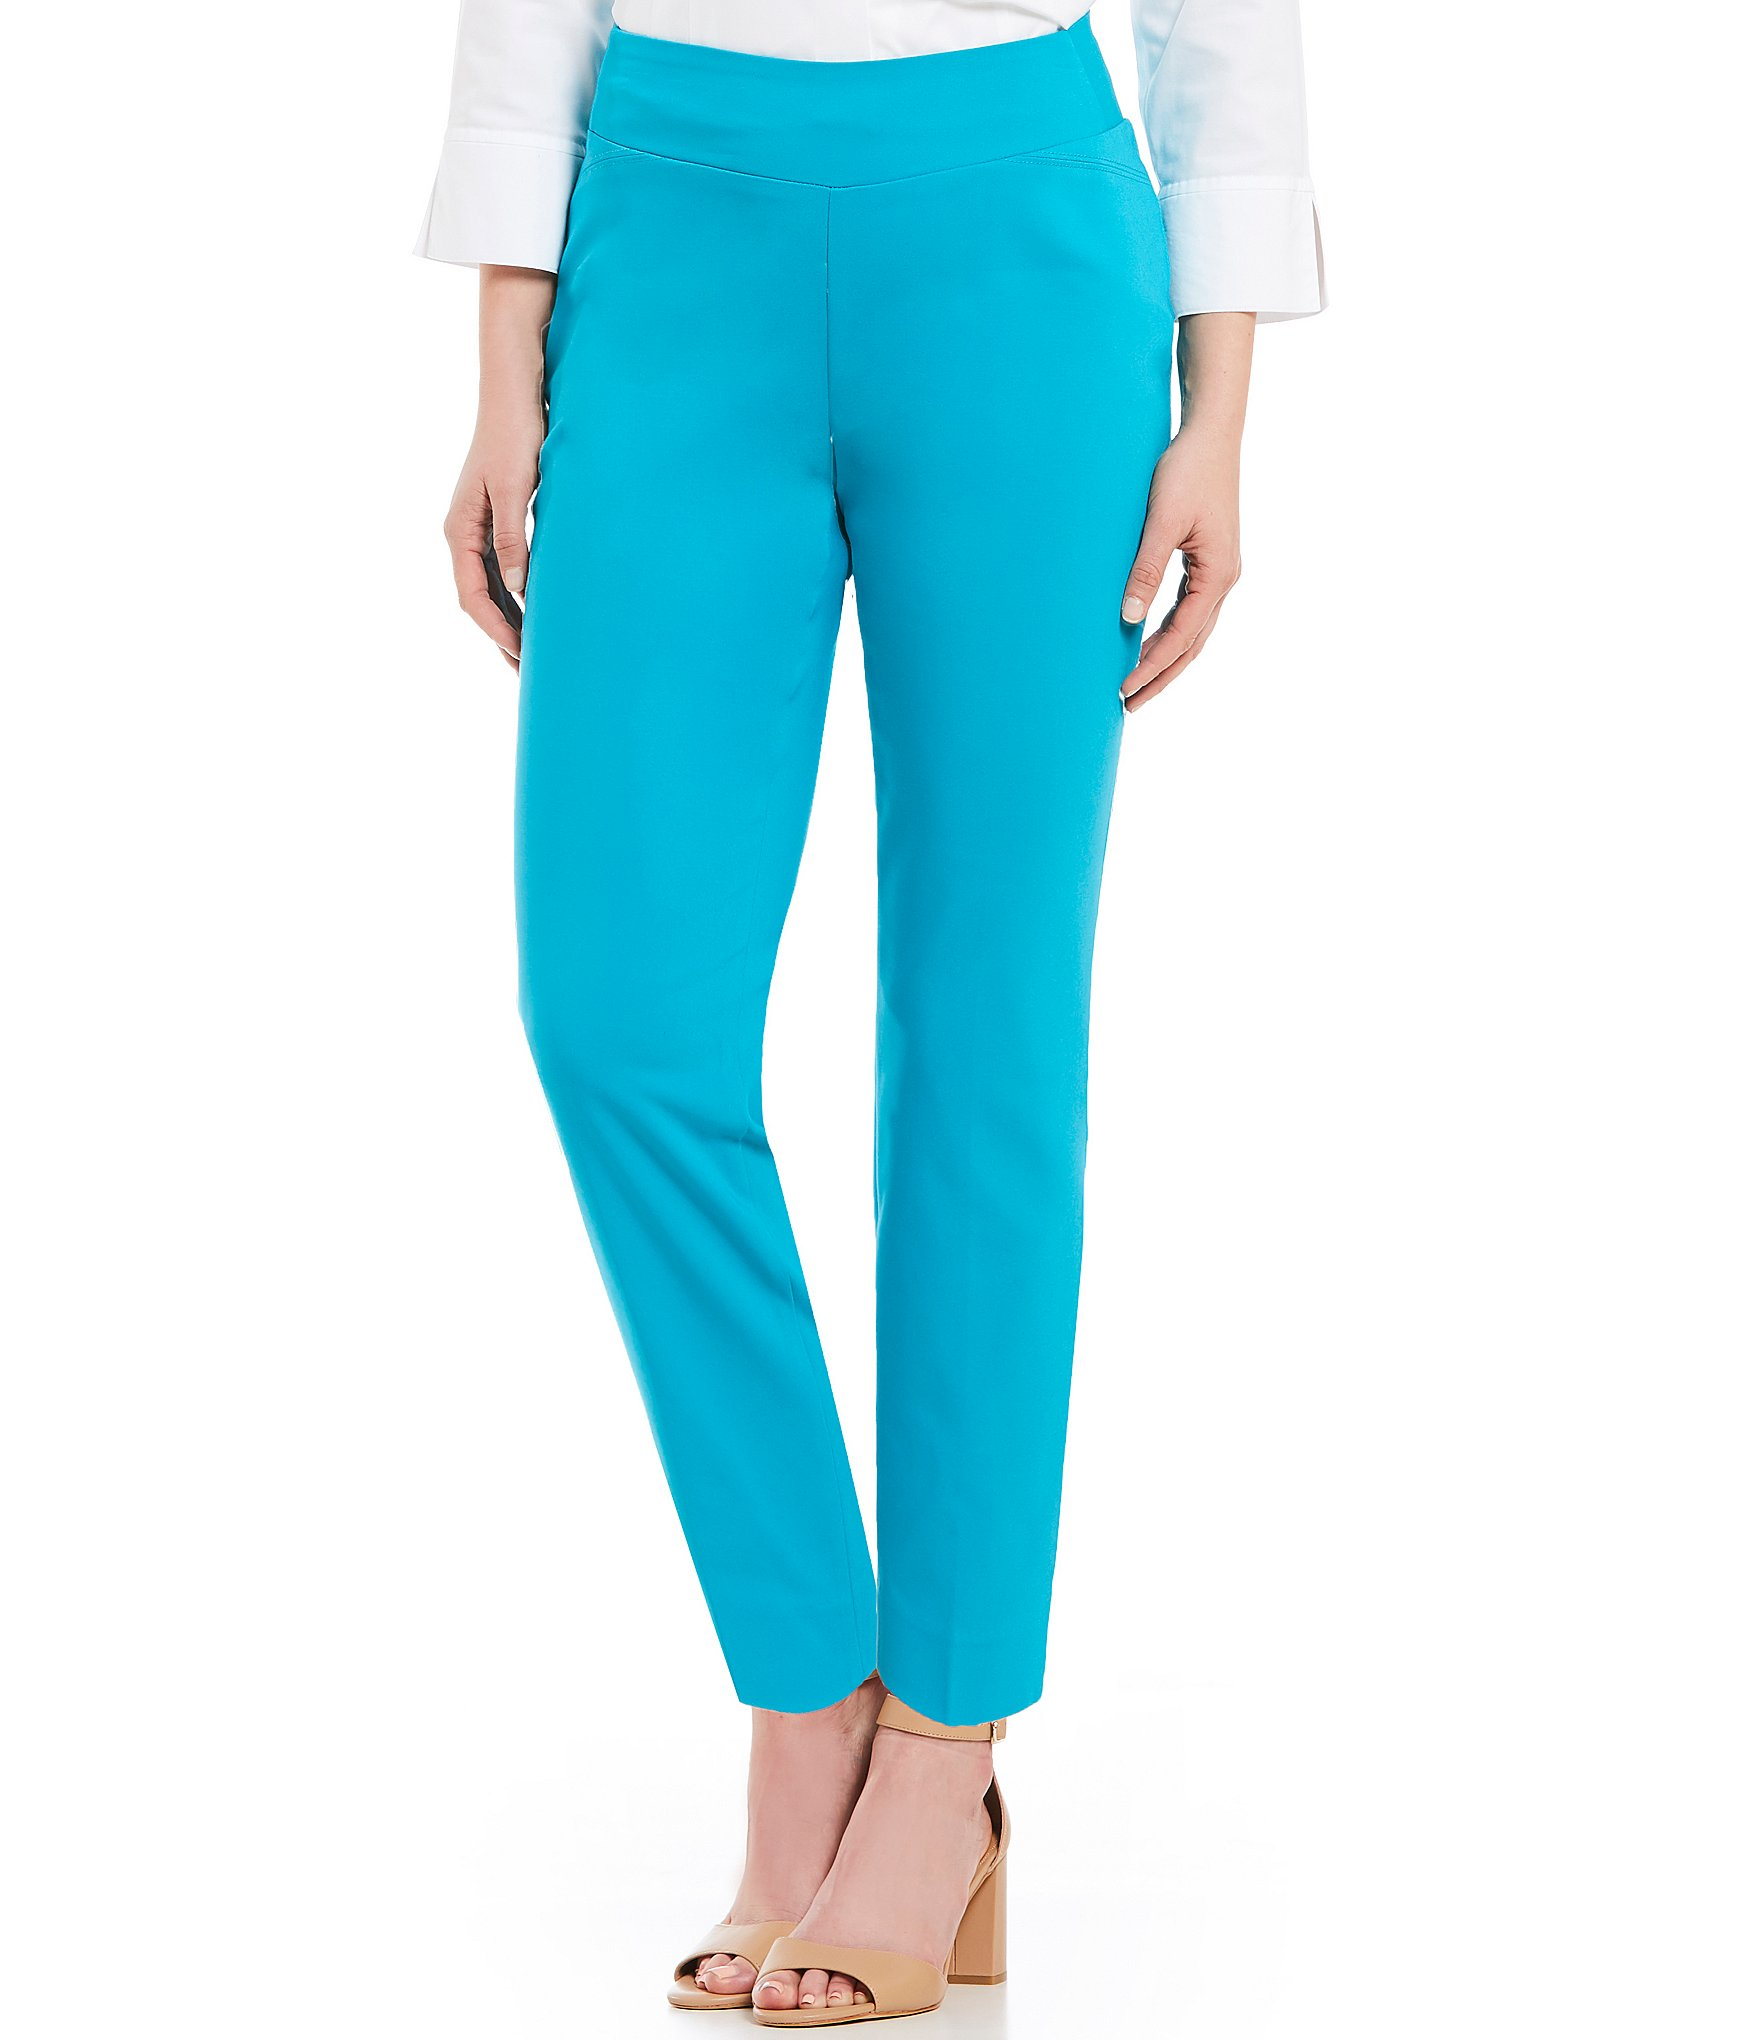 Fancy Pant Suits For Weddings. Fancy Pant Suits For Weddings. Man ...